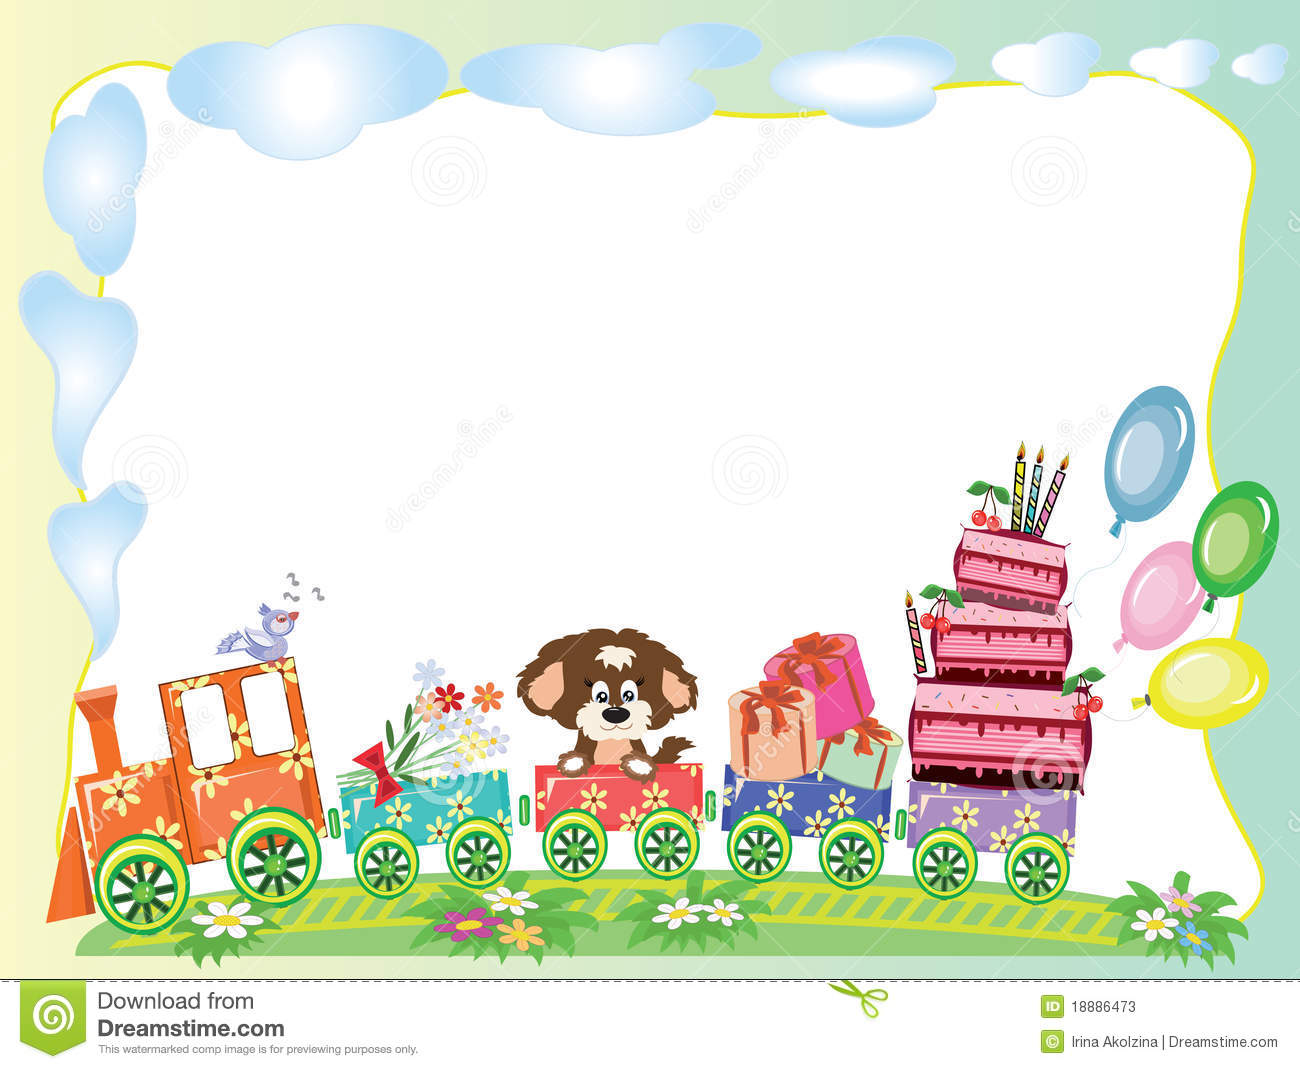 250959274564 besides Stock Photos Birthday Frame Image18886473 also 59057 Baby Duck Vector also Tea Cart Toy also Inflatable Intex Deer Ride On 3 560046673. on balloon animal toy